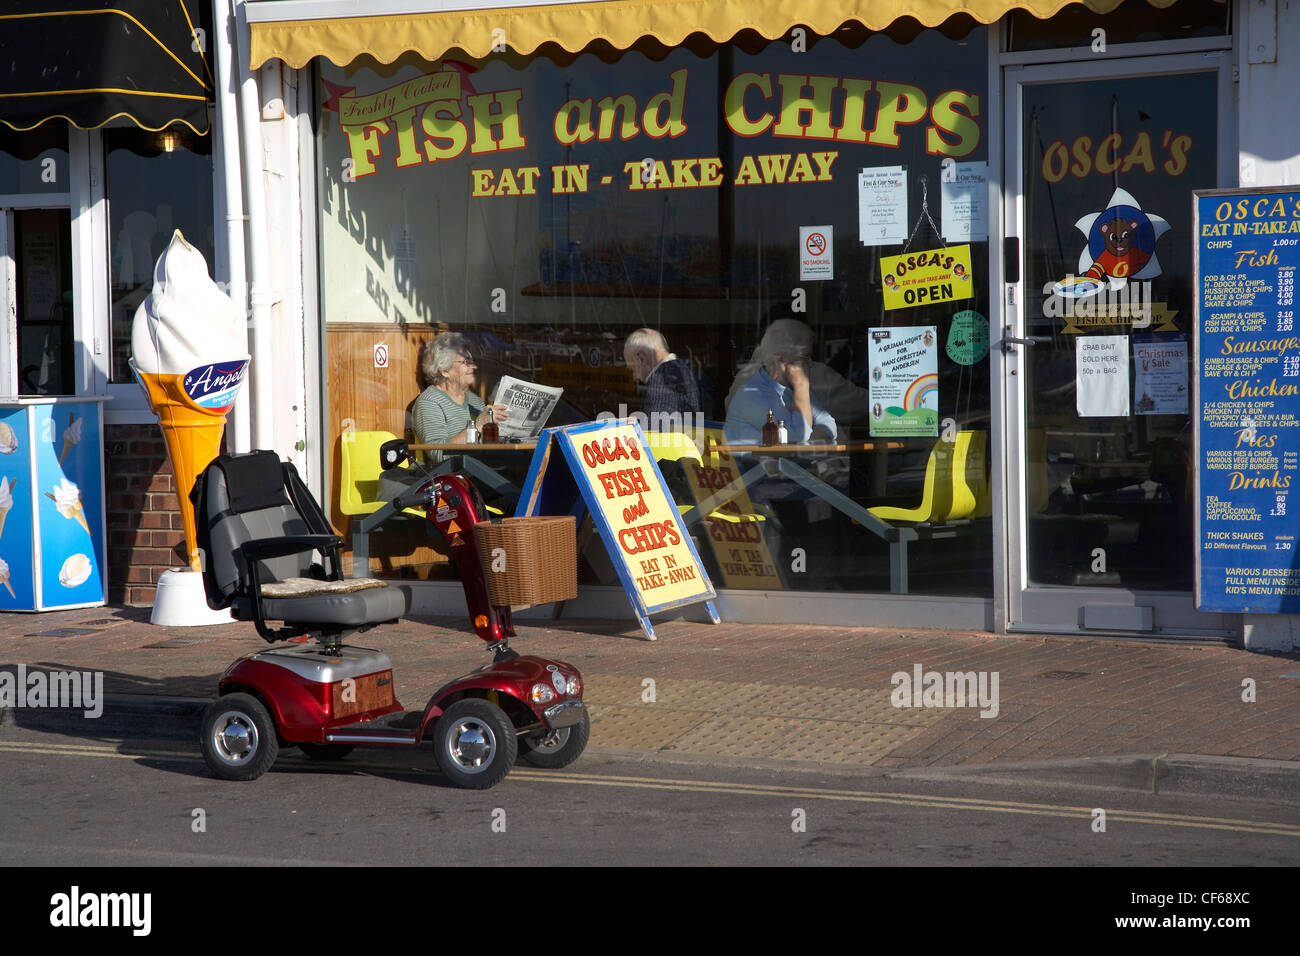 Exterior of a fish and chip restaurant. - Stock Image